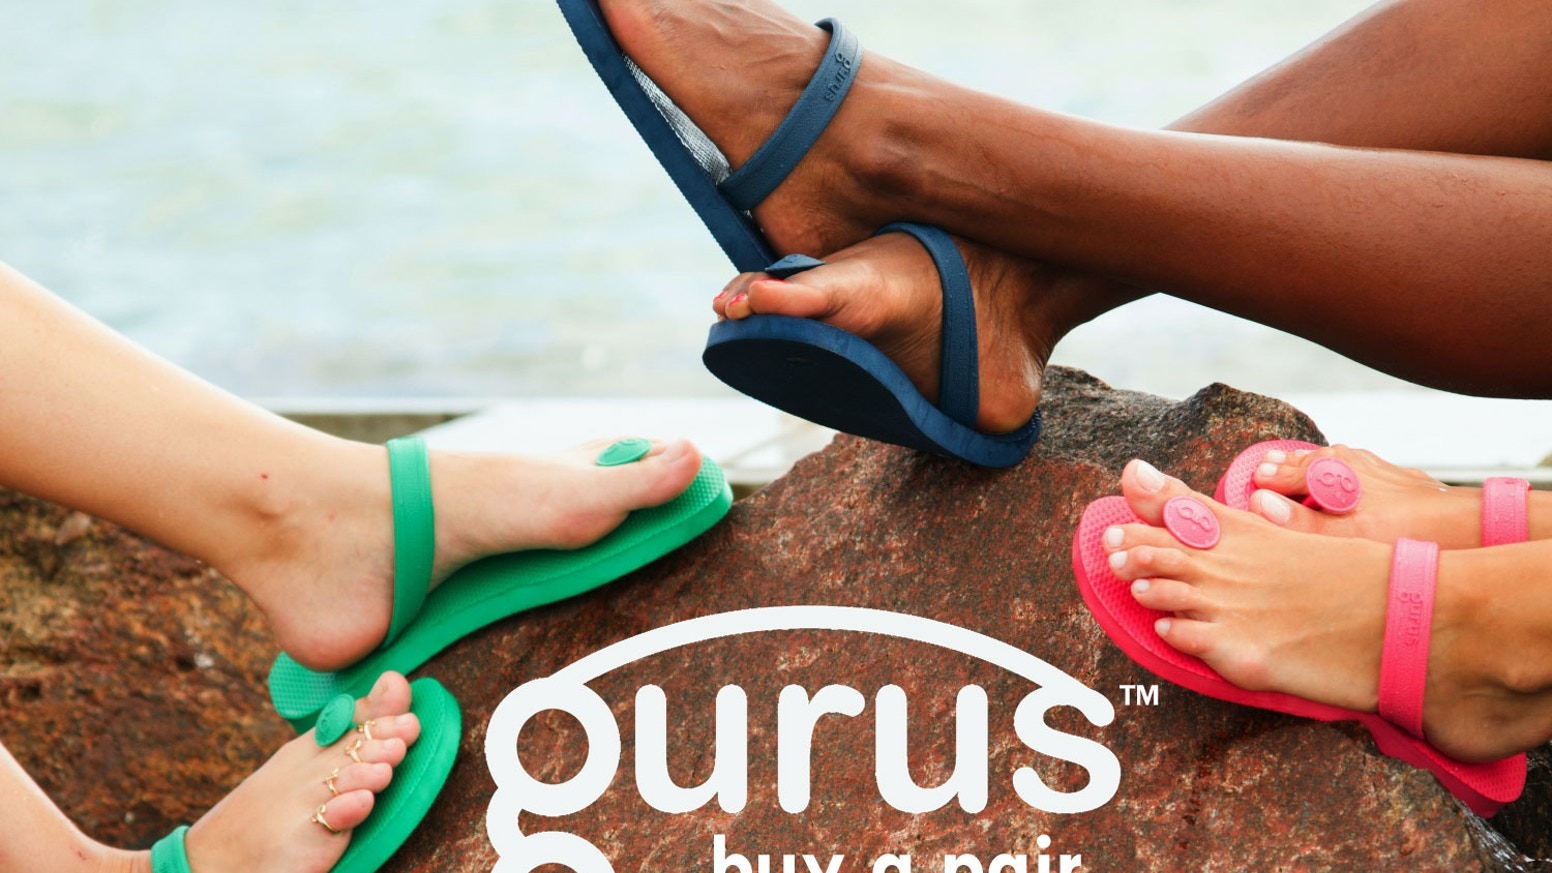 Based on over 5,000 years of Indian tradition, Gurus are unique, stylish and comfortable sandals sustainably sourced from rubber trees.